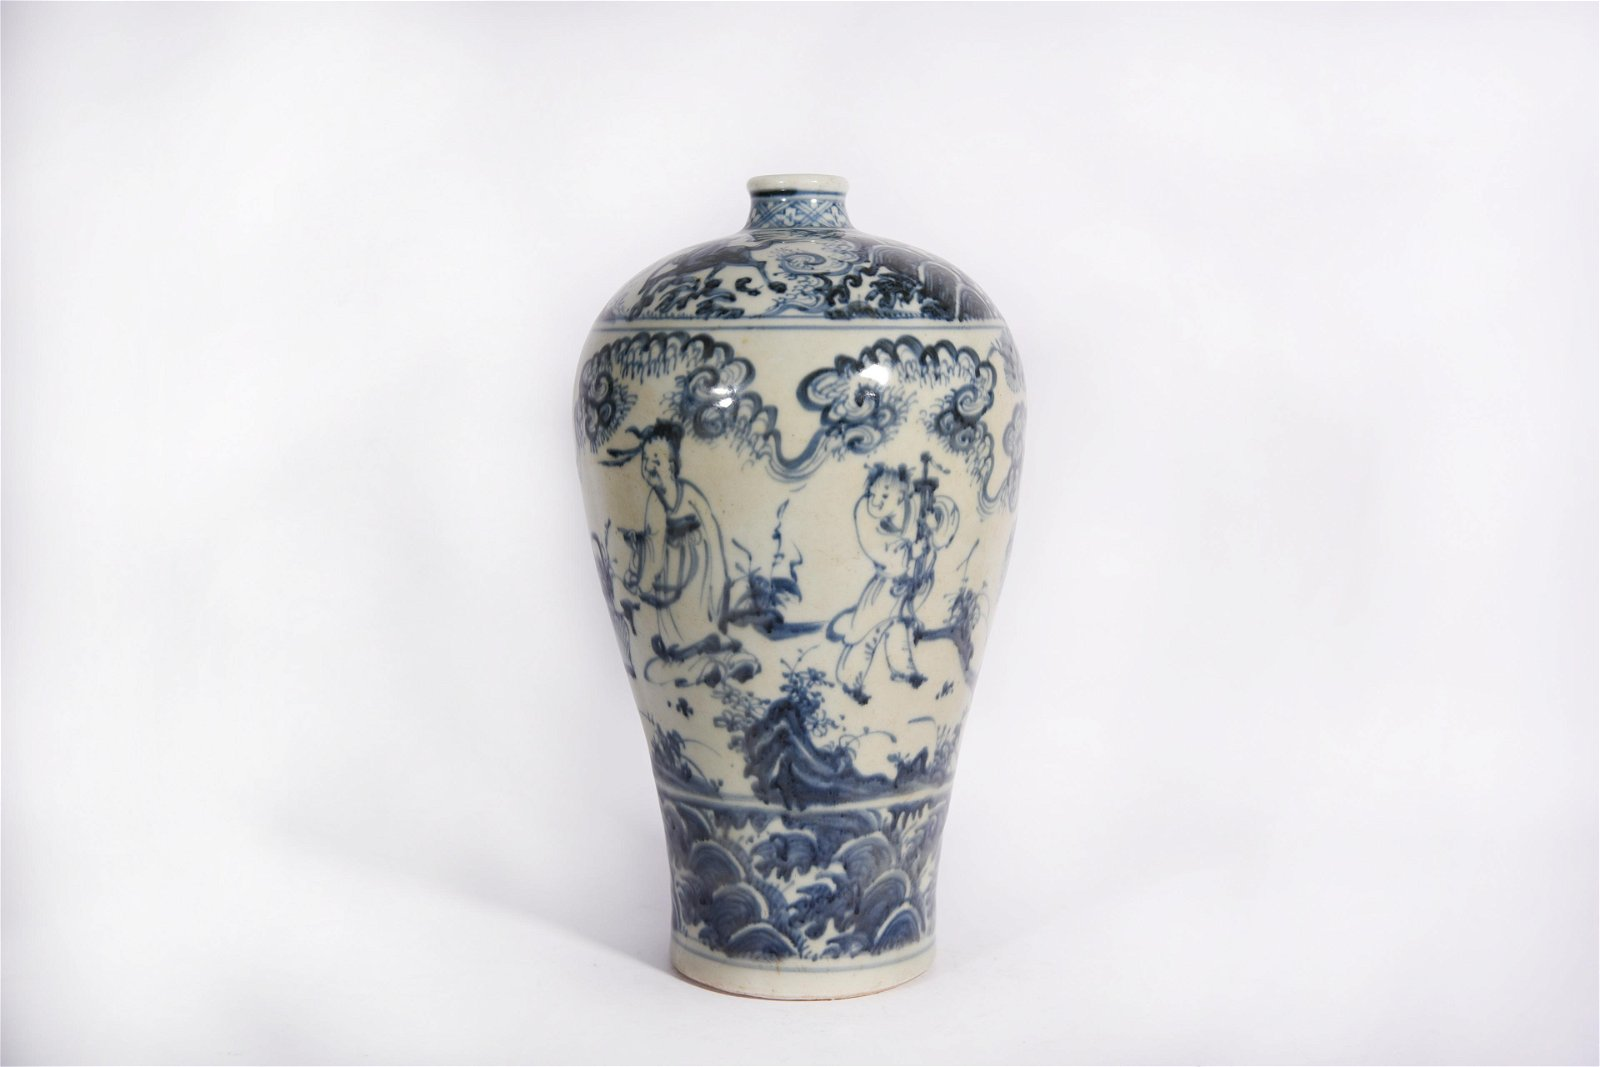 A Blue and White Meiping Ming Dynasty